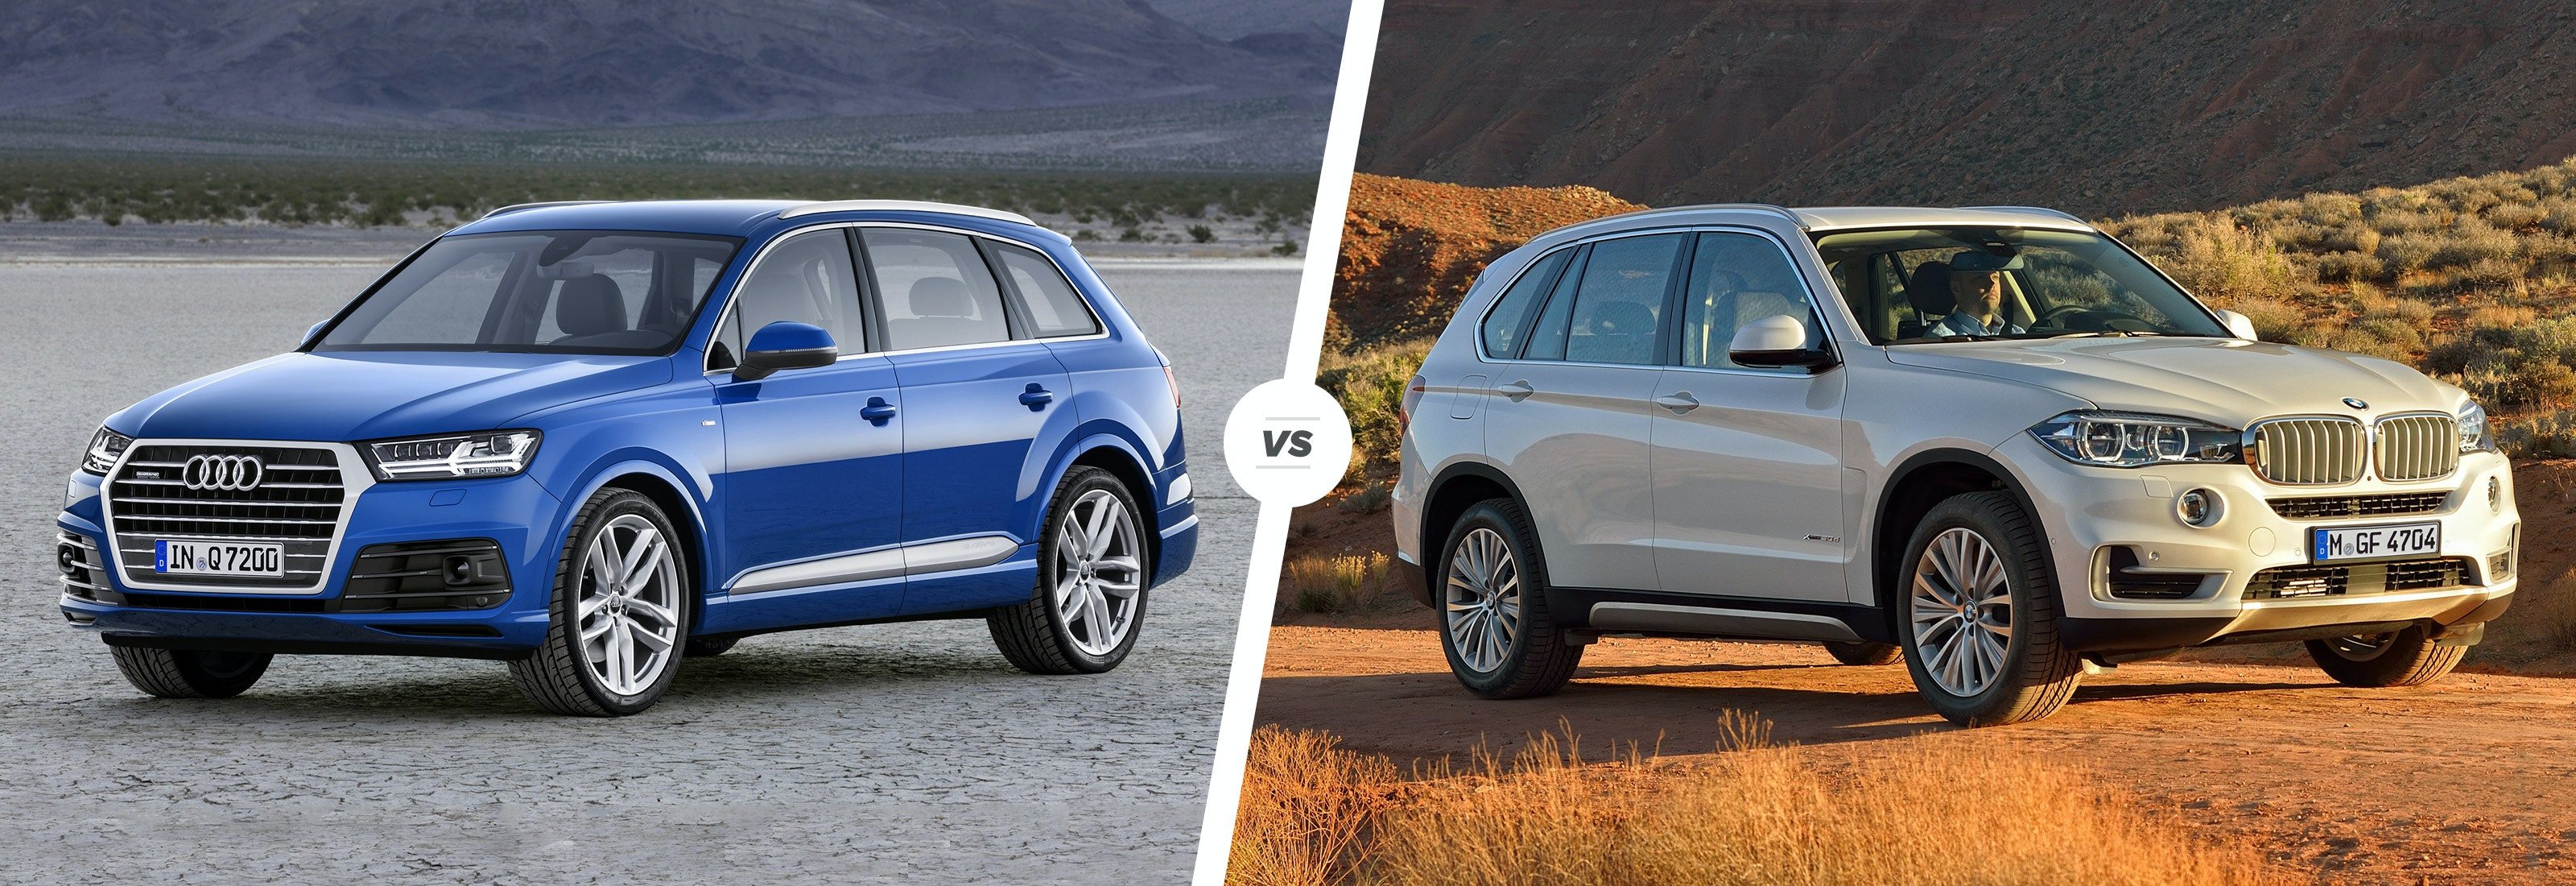 Audi Q7 vs BMW X5 – luxury SUV showdown